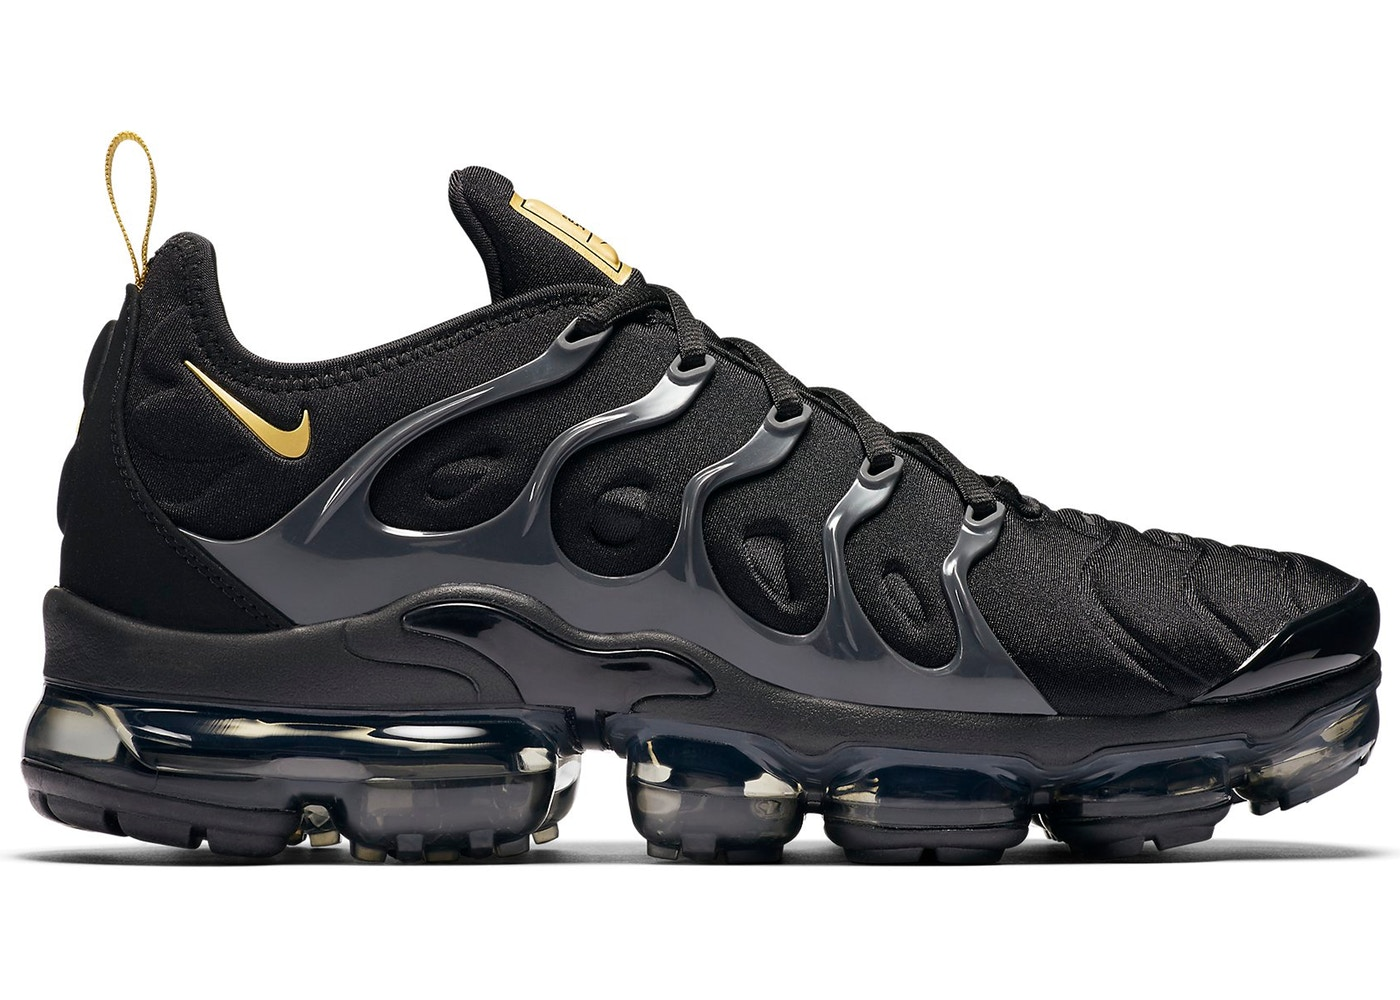 promo code 129cc 587cc Air VaporMax Plus Black Metallic Gold Anthracite